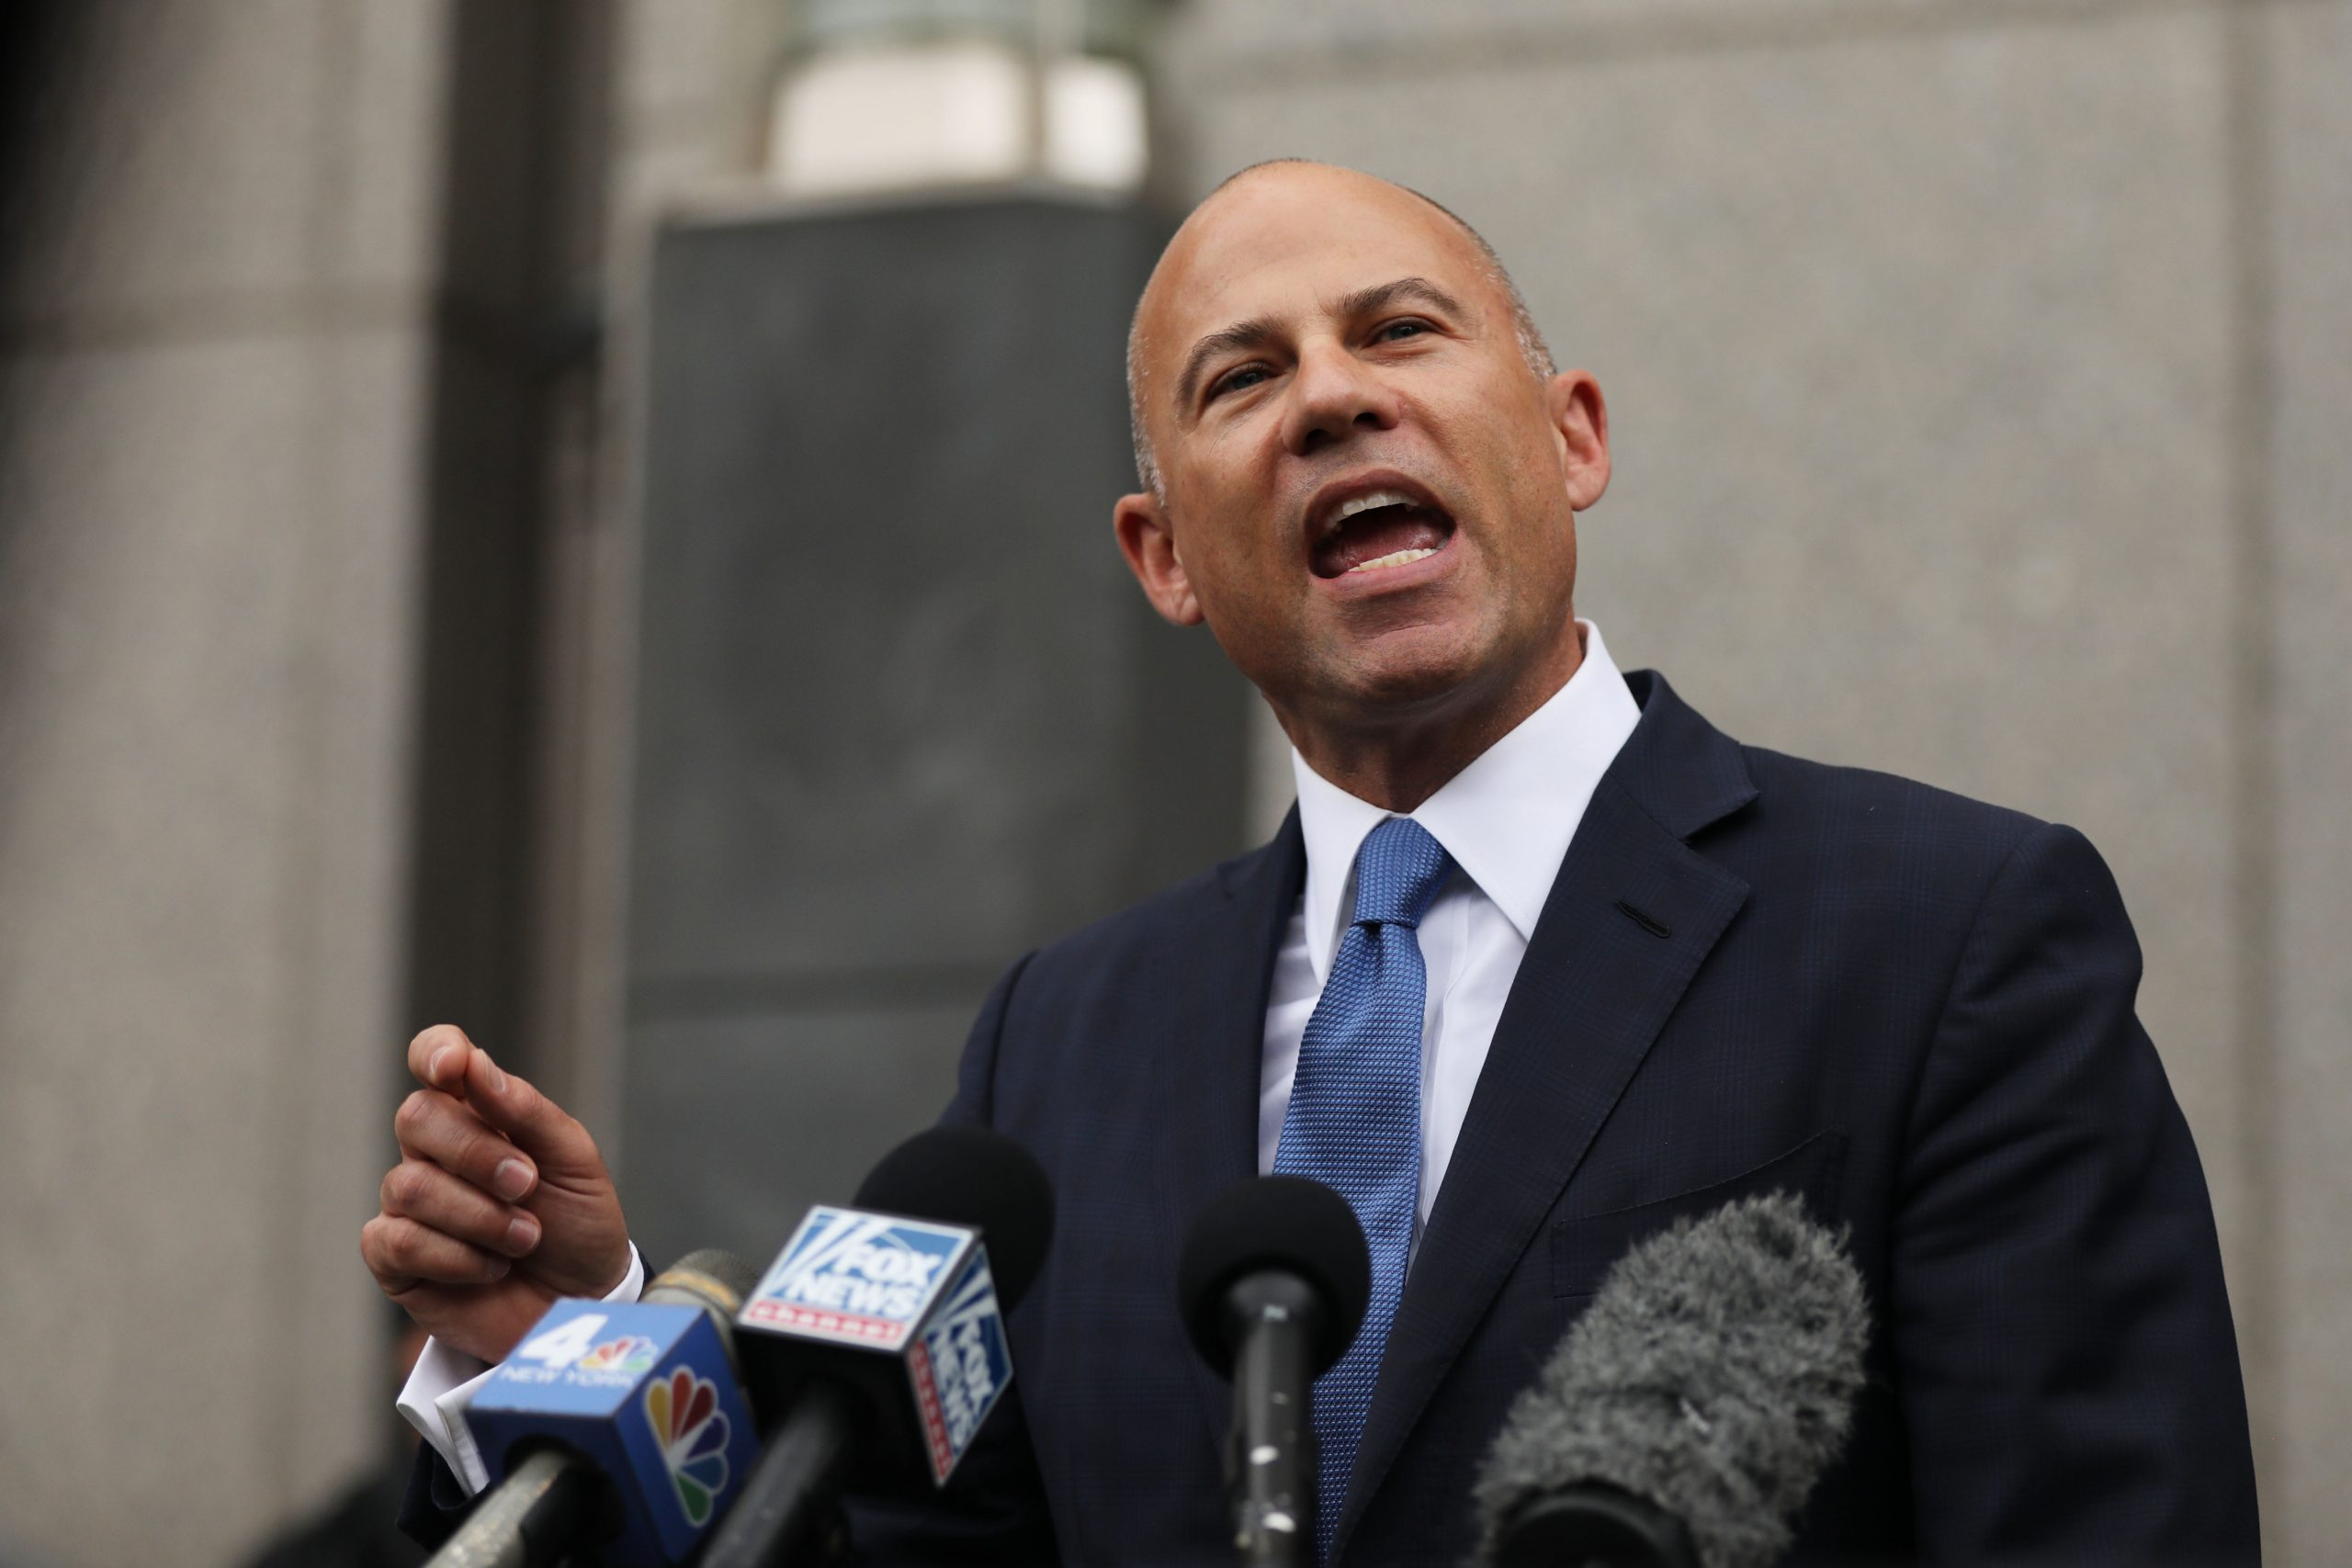 IRS agents arrest indicted lawyer Michael Avenatti for bail violation in California